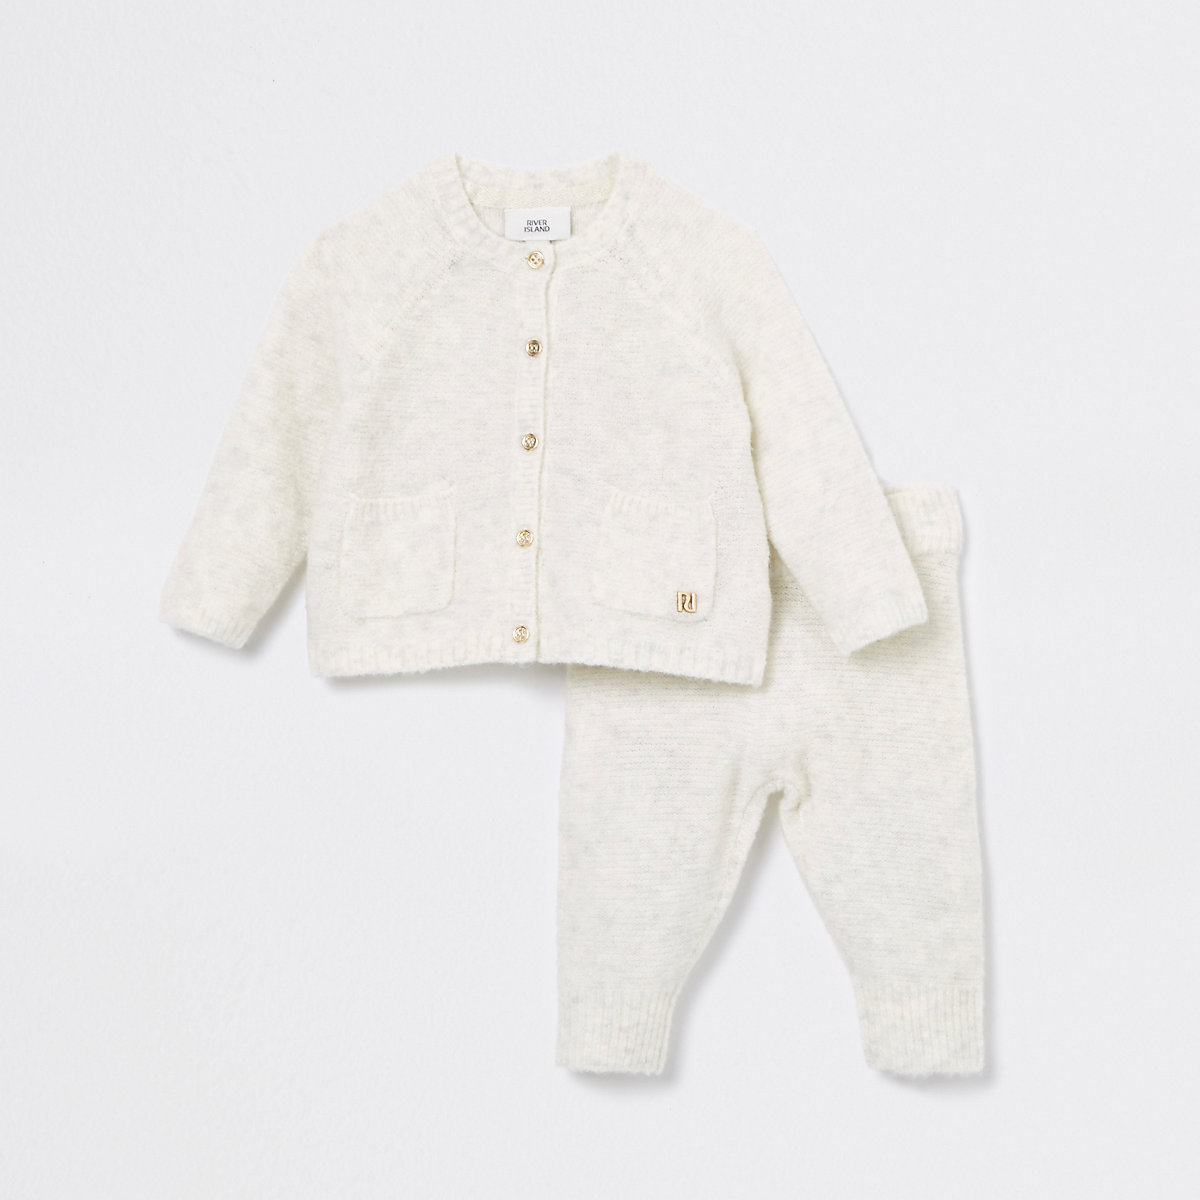 Baby cream yarn knitted cardigan outfit